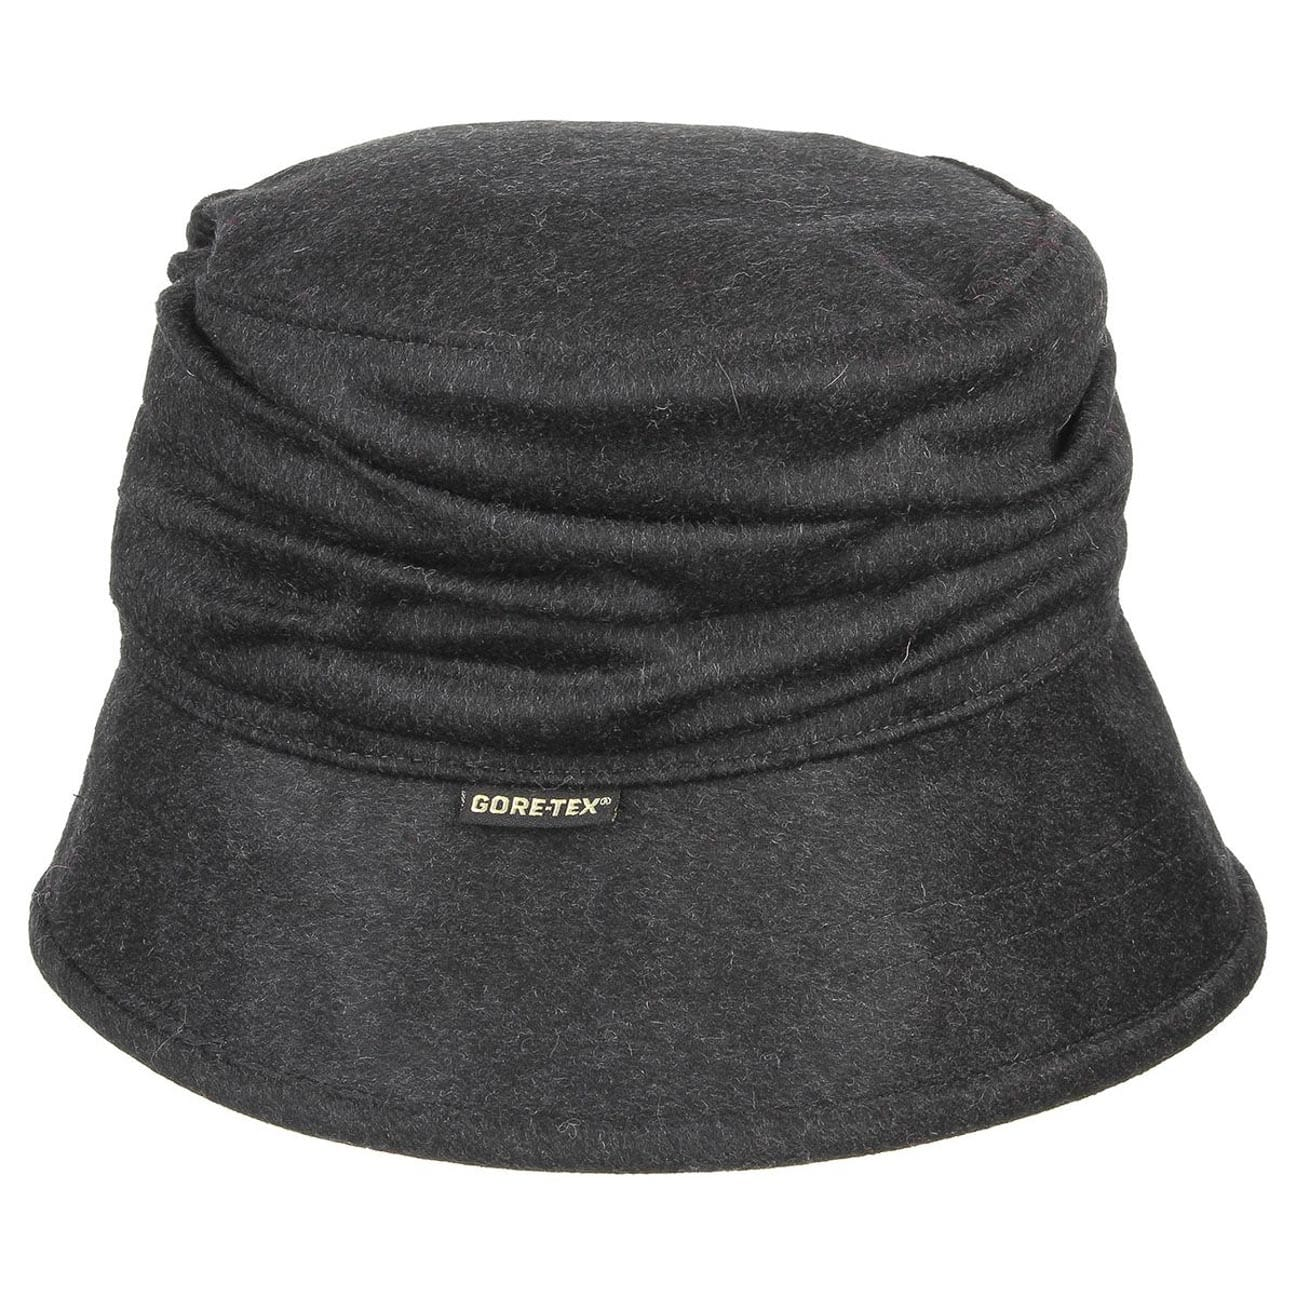 7086ce38934 ... Gore-Tex Cloche for Women by Seeberger 2 ...